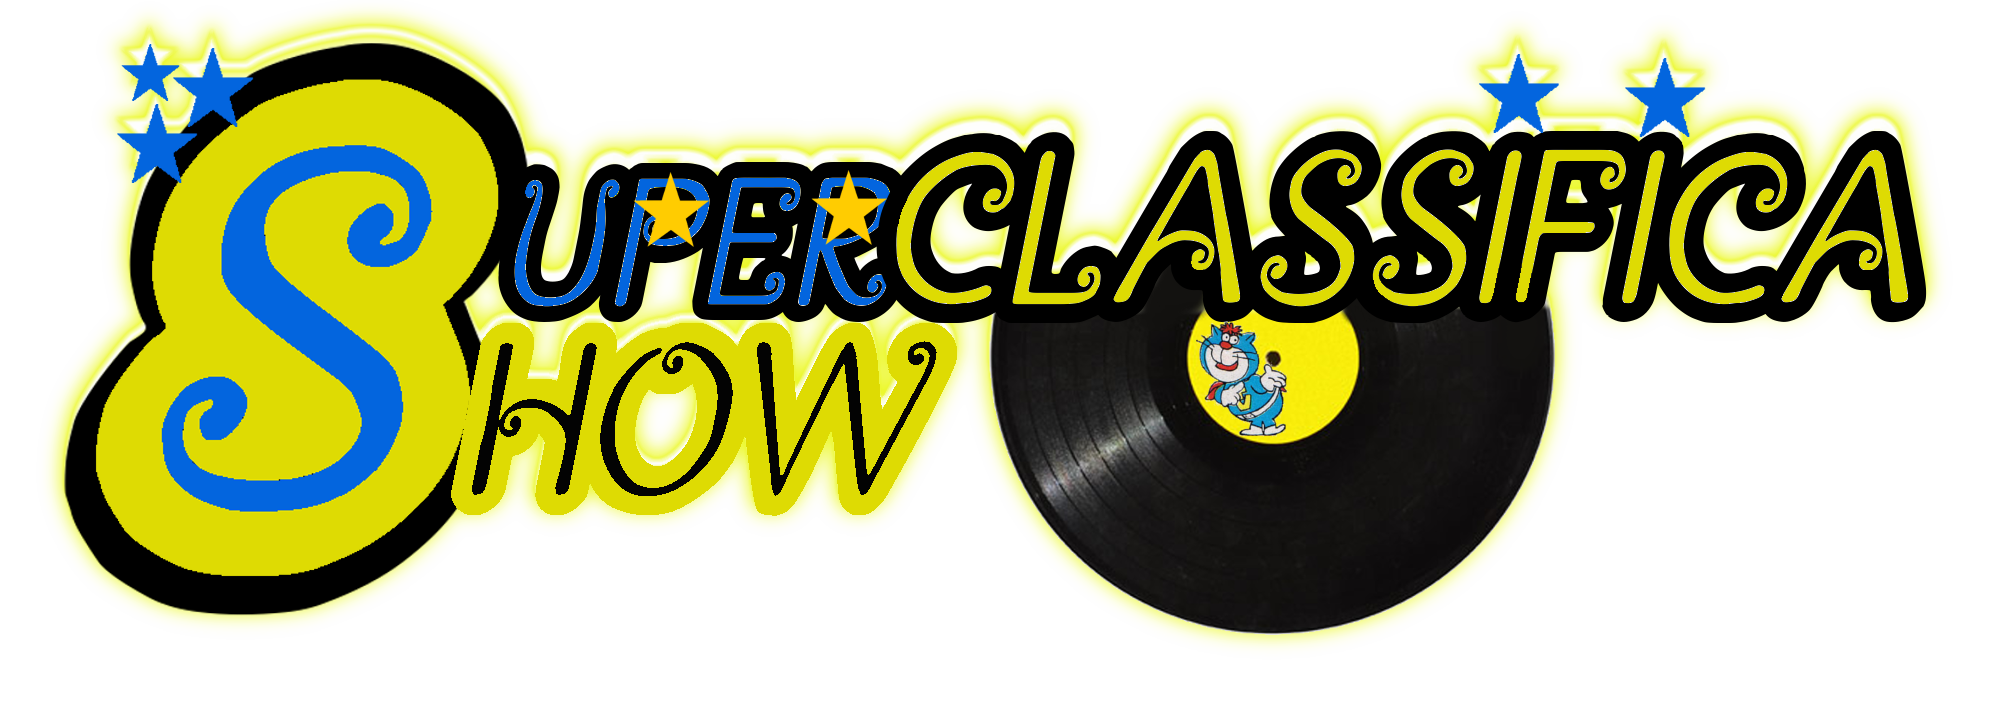 SuperClassificaShow (replica)